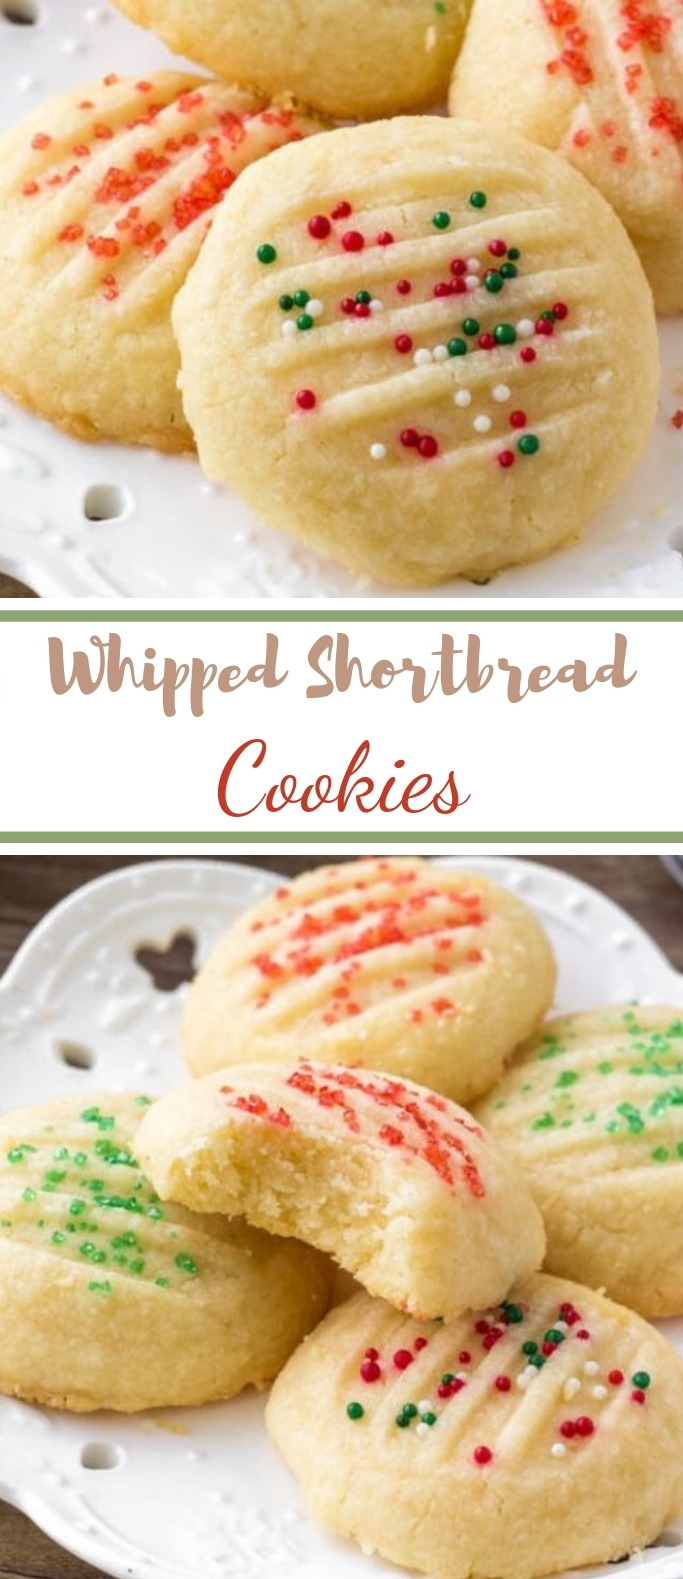 Whipped Shortbread Cookies #cookies #holiday